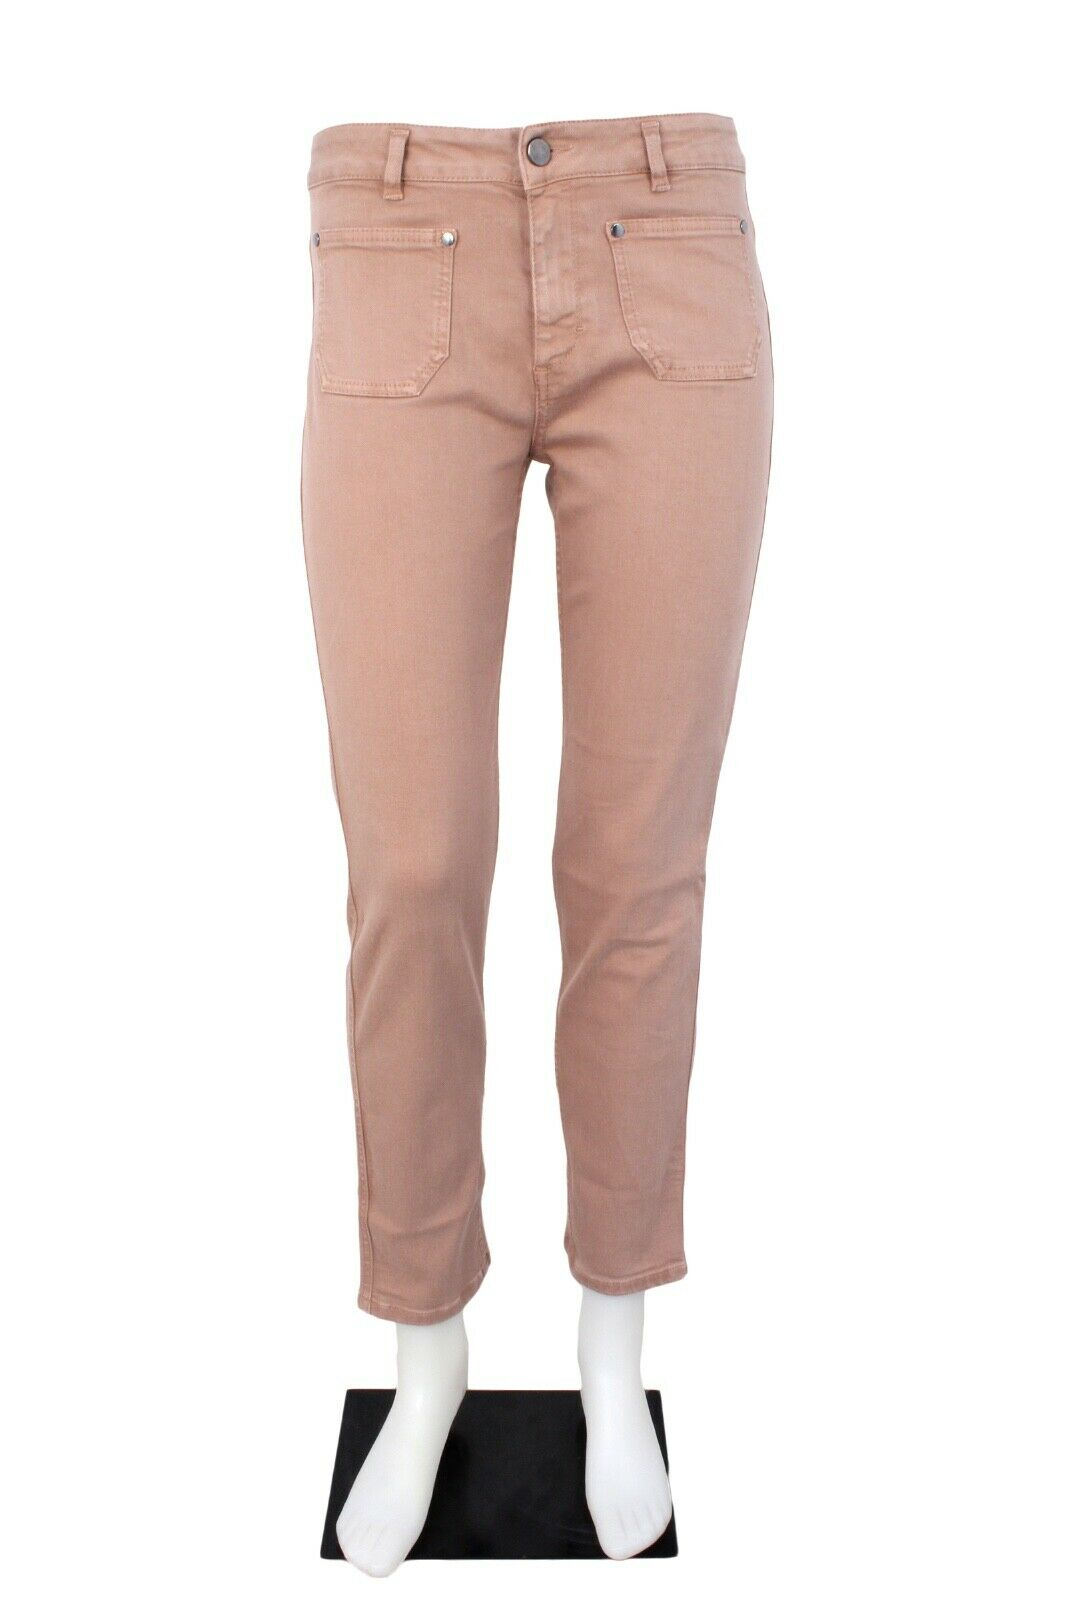 Dgoldthee Schumacher - CASUAL COOLNESS  PANTS  - Nude - NEW